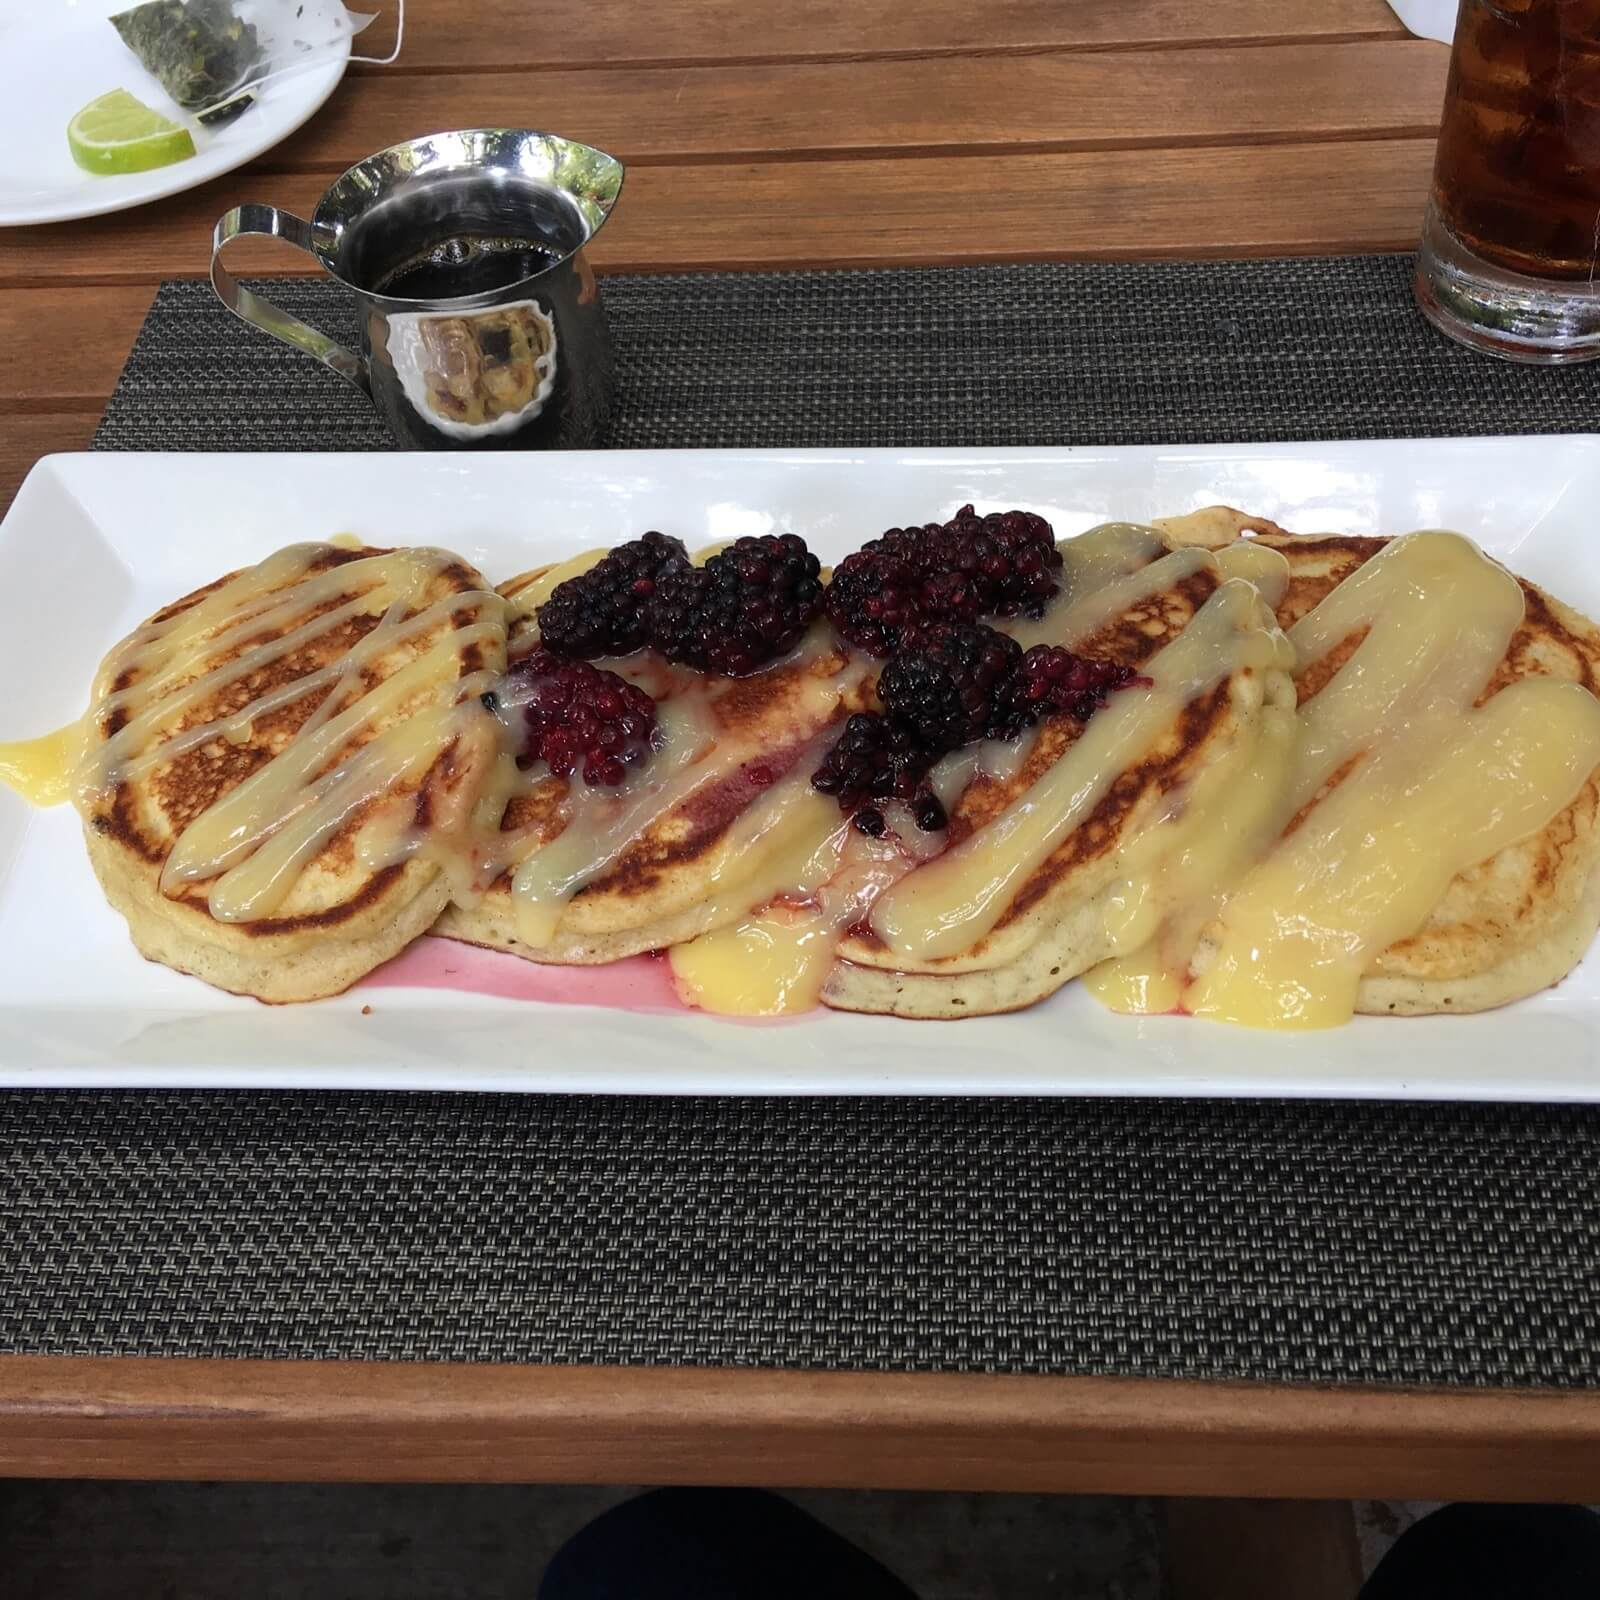 The buttermilk pancakes with blueberry compote, lemon curd and maple syrup are a breakfast must!